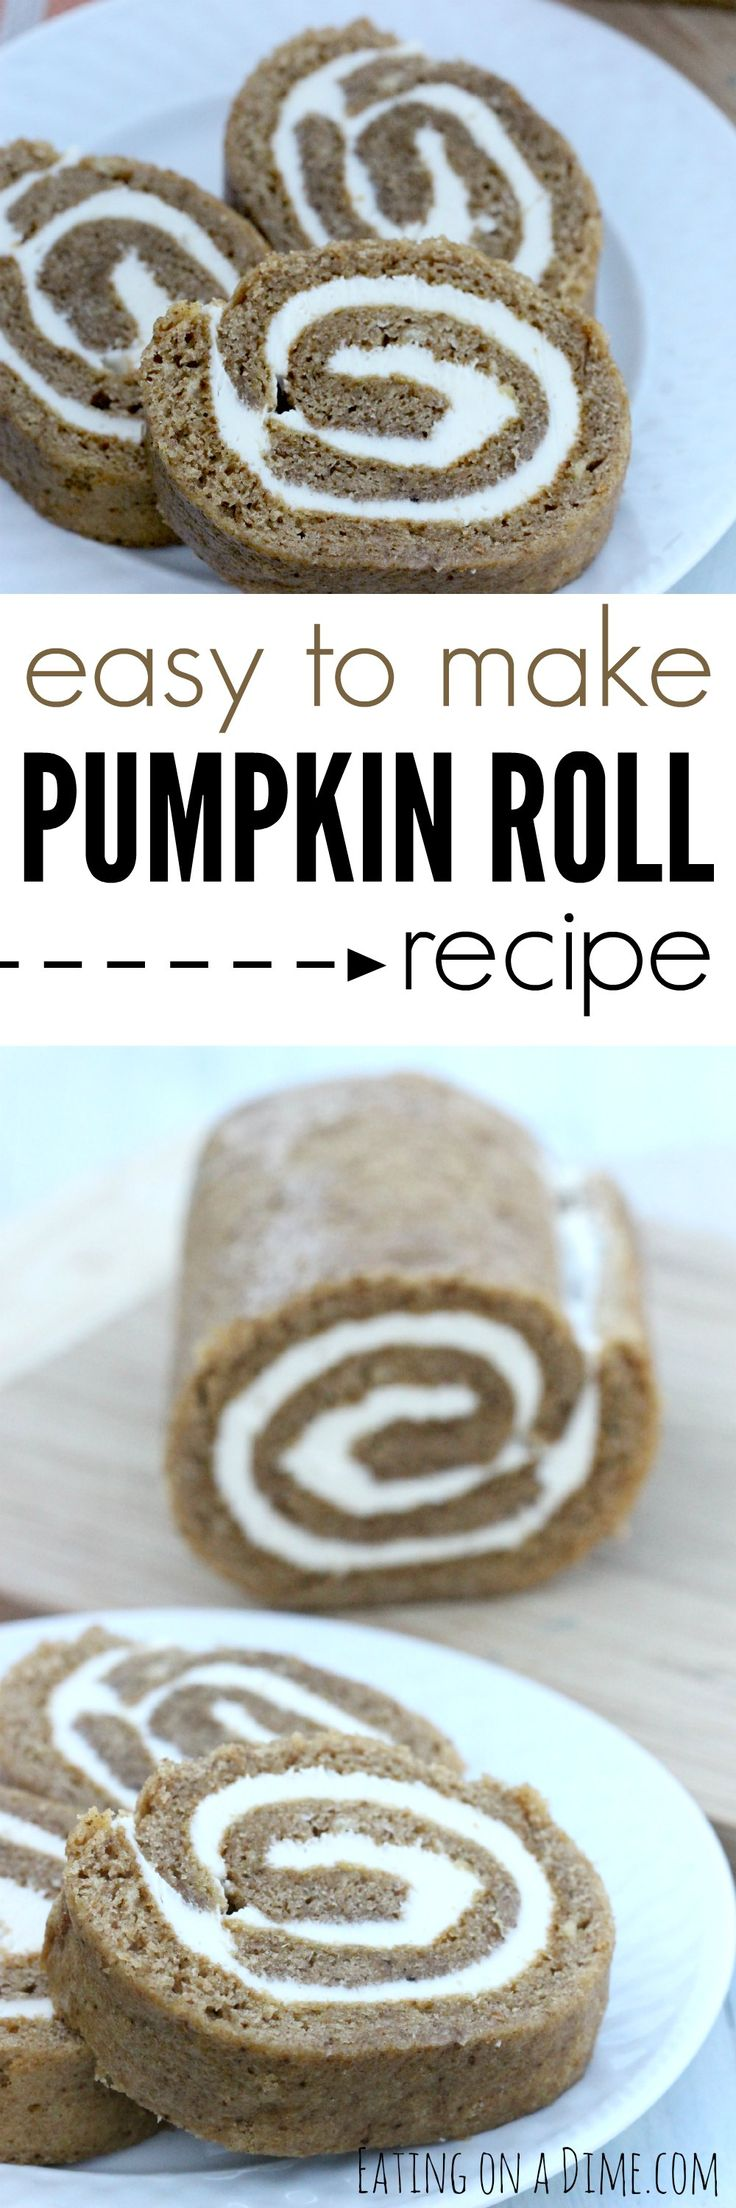 Easy to Make Pumpkin Roll recipe.  If I can be successful making this pumpkin roll, I know you will be able to do it well, too.